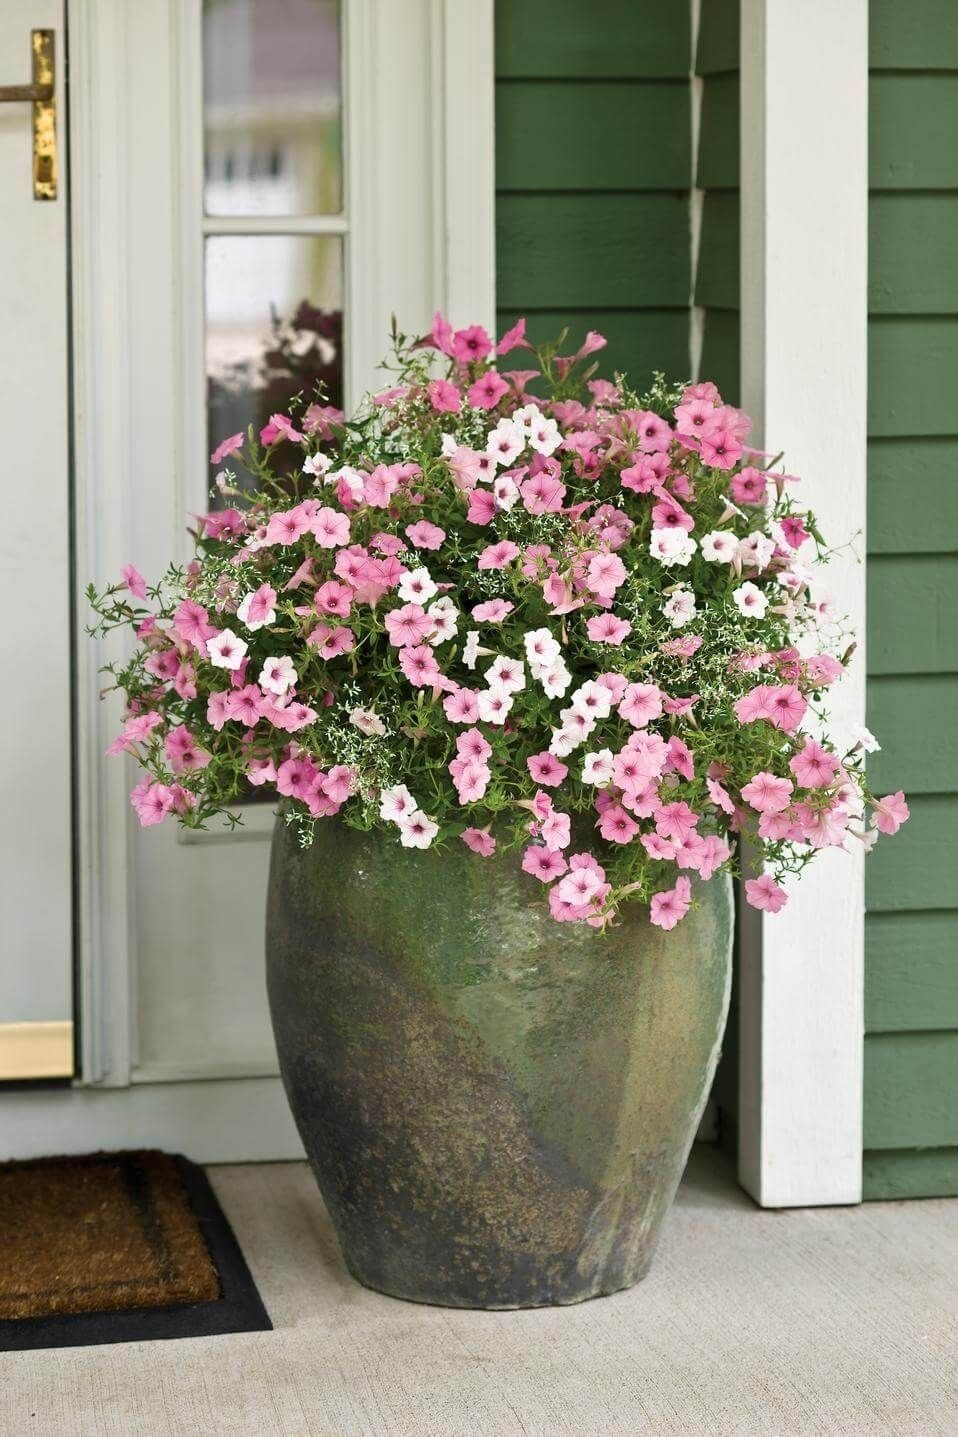 10 Fashionable Flower Pot Ideas For Front Porch 29 pretty front door flower pots that will add personality to your 1 2021